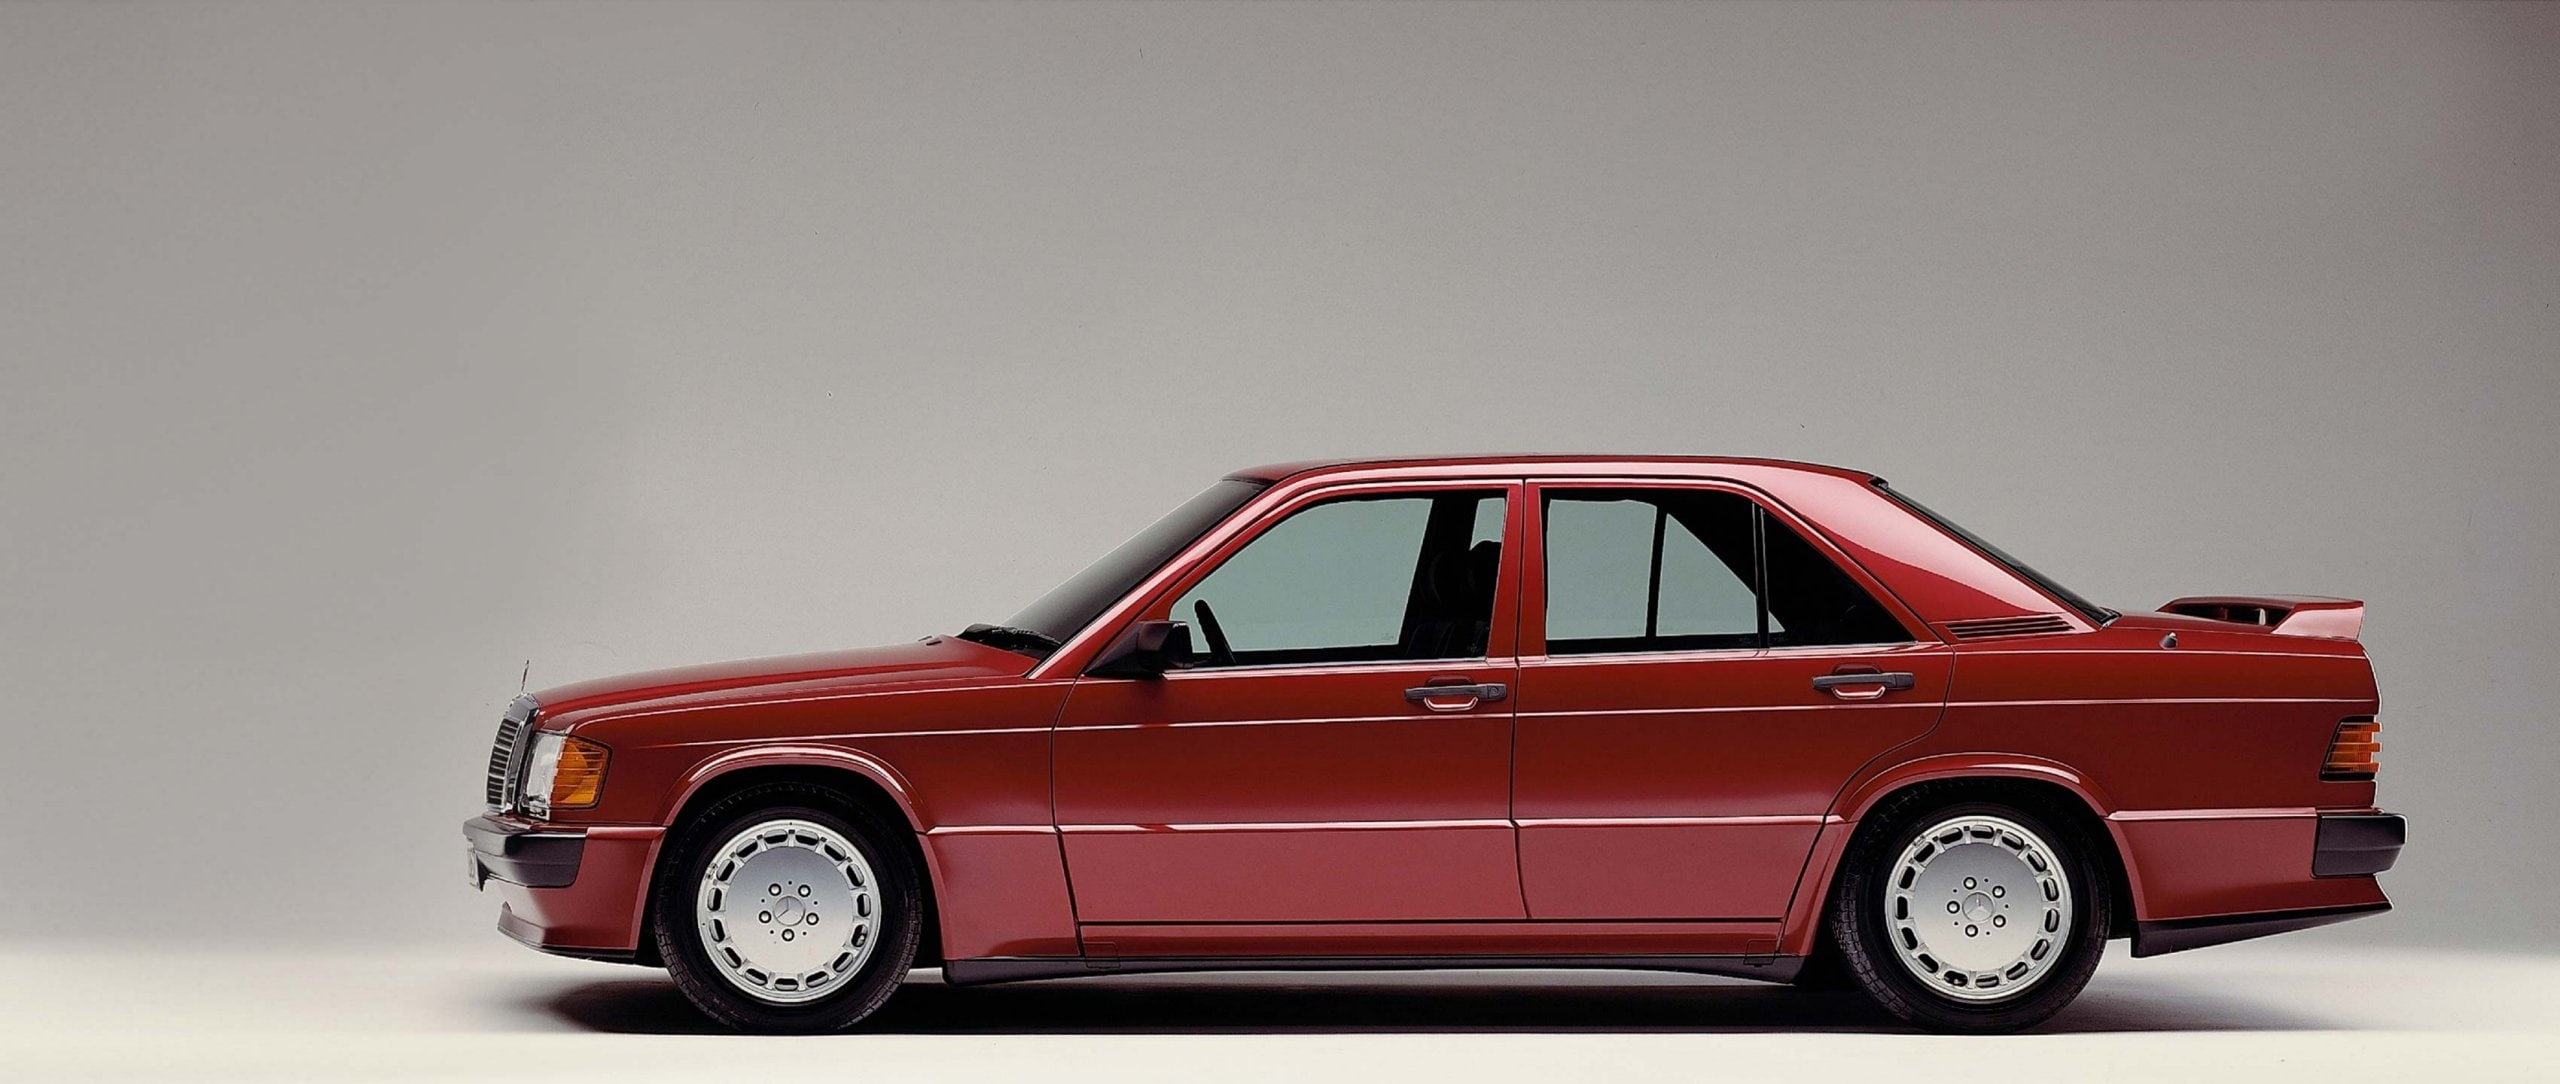 Rare Mercedes-Benz classics: 2018 the 190 E 2.5-16 (201 series) and the the 560 SE (126 series) will be 30 years old.